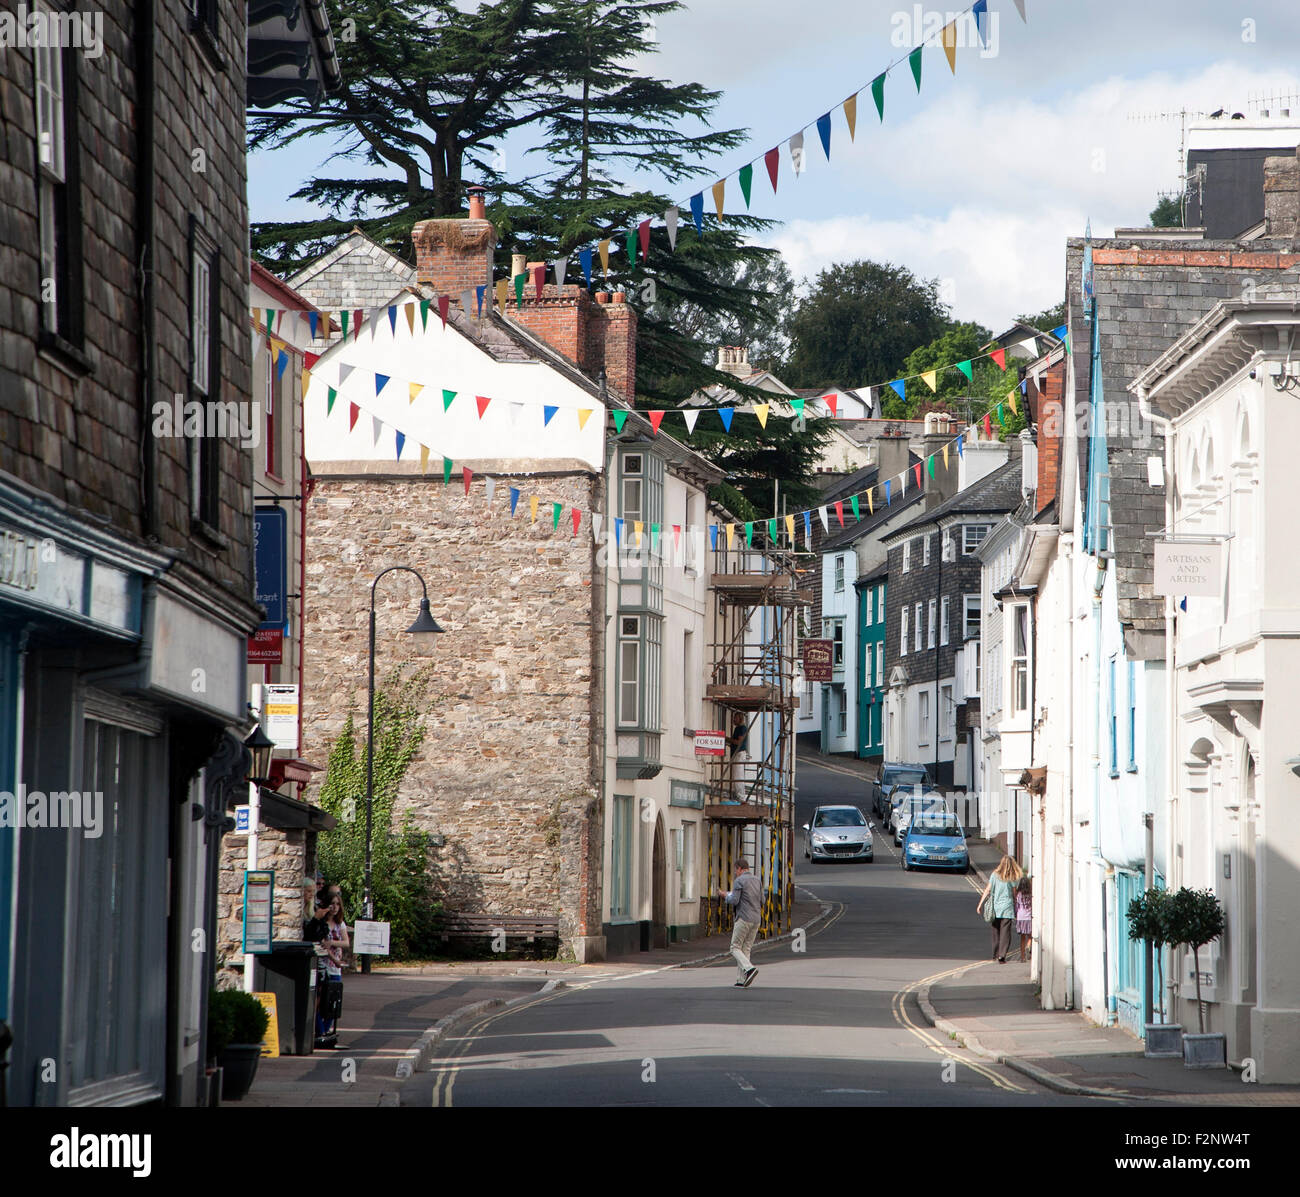 Street and buildings in Ashburton, Devon, England, UK - Stock Image